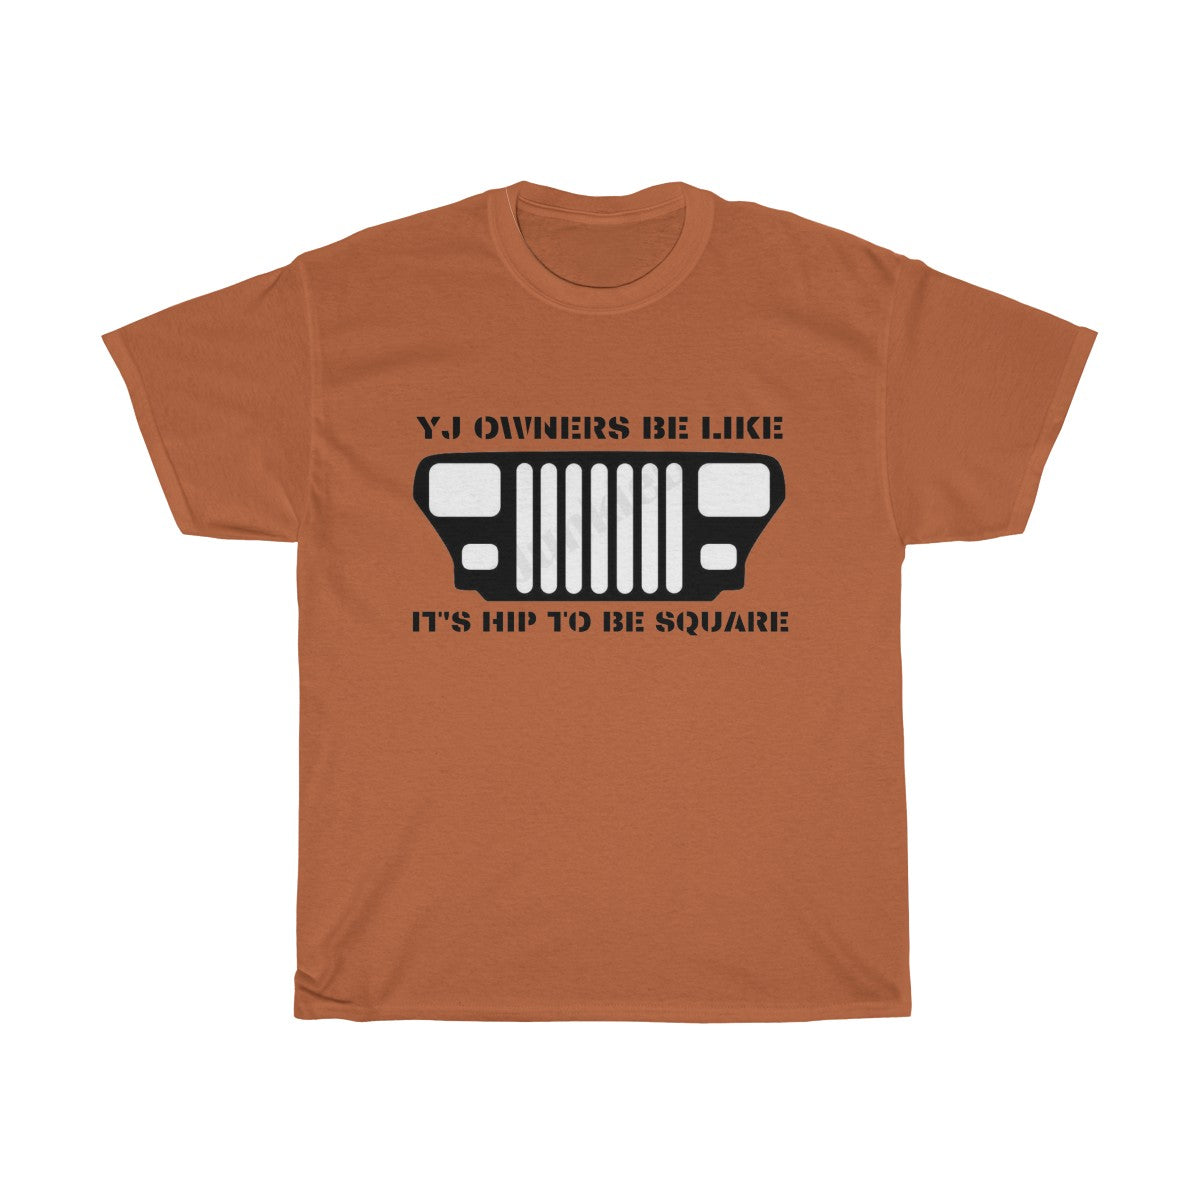 Jeep shirts accessories tee Yj nation Unisex